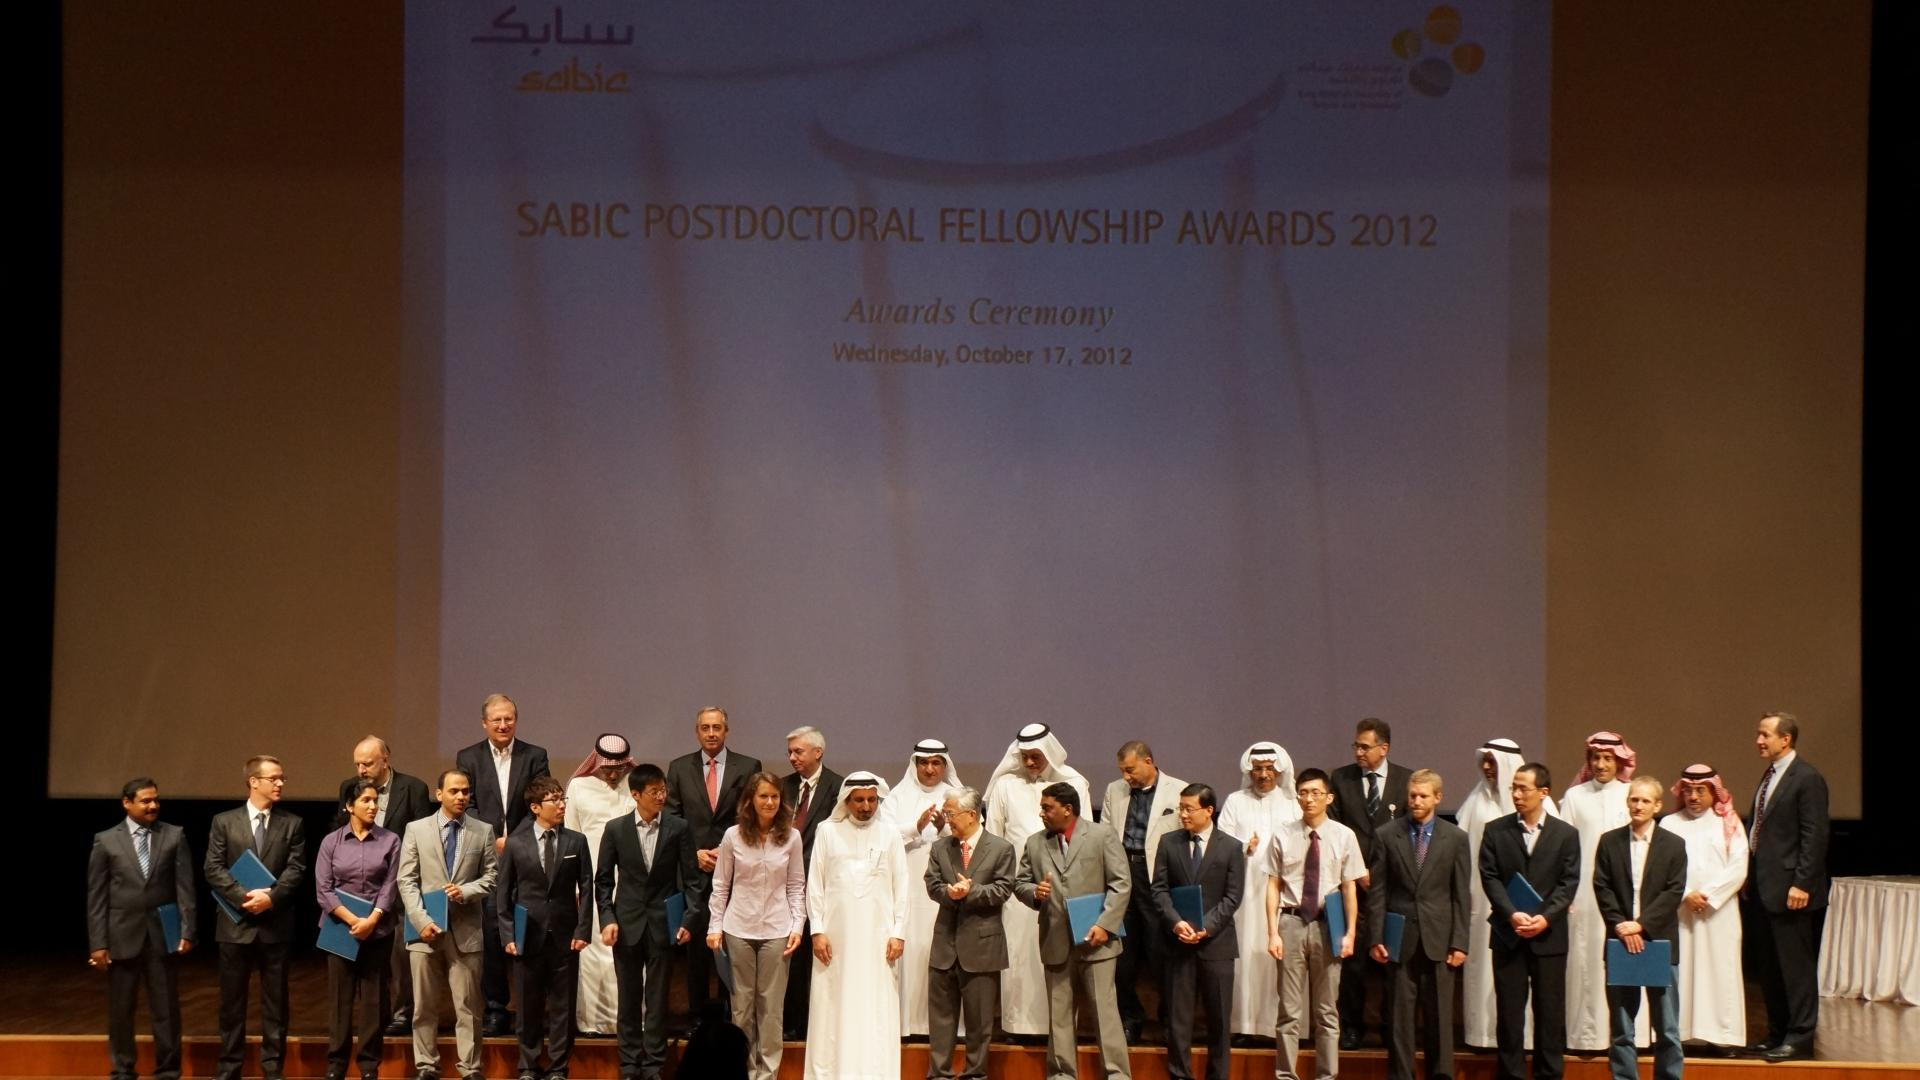 Kihong Park (Winner of Sabic Post Doctoral Fellowship Award) In The Sabic Post Doctoral Awards Ceremony